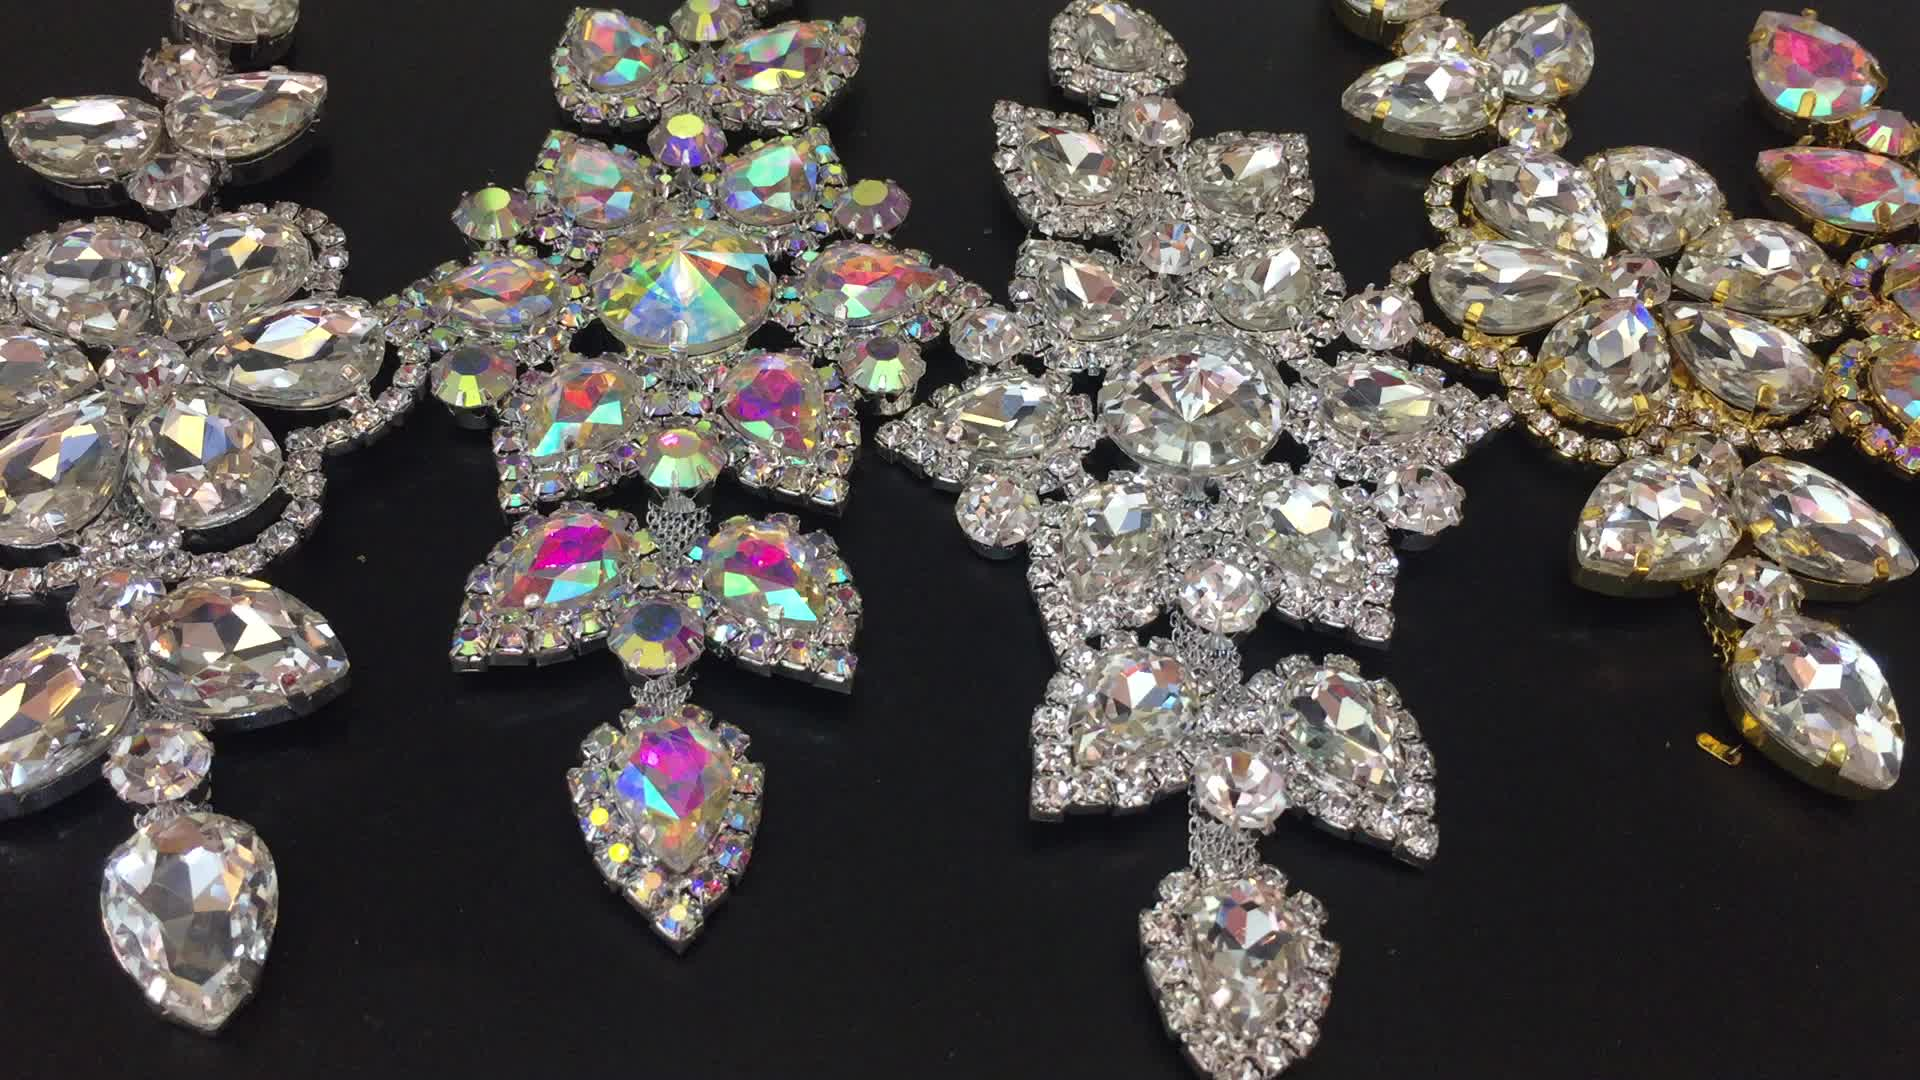 New product siam 4.5*5.8cm corsage with gold base sew on rhinestone applique for garment accessories